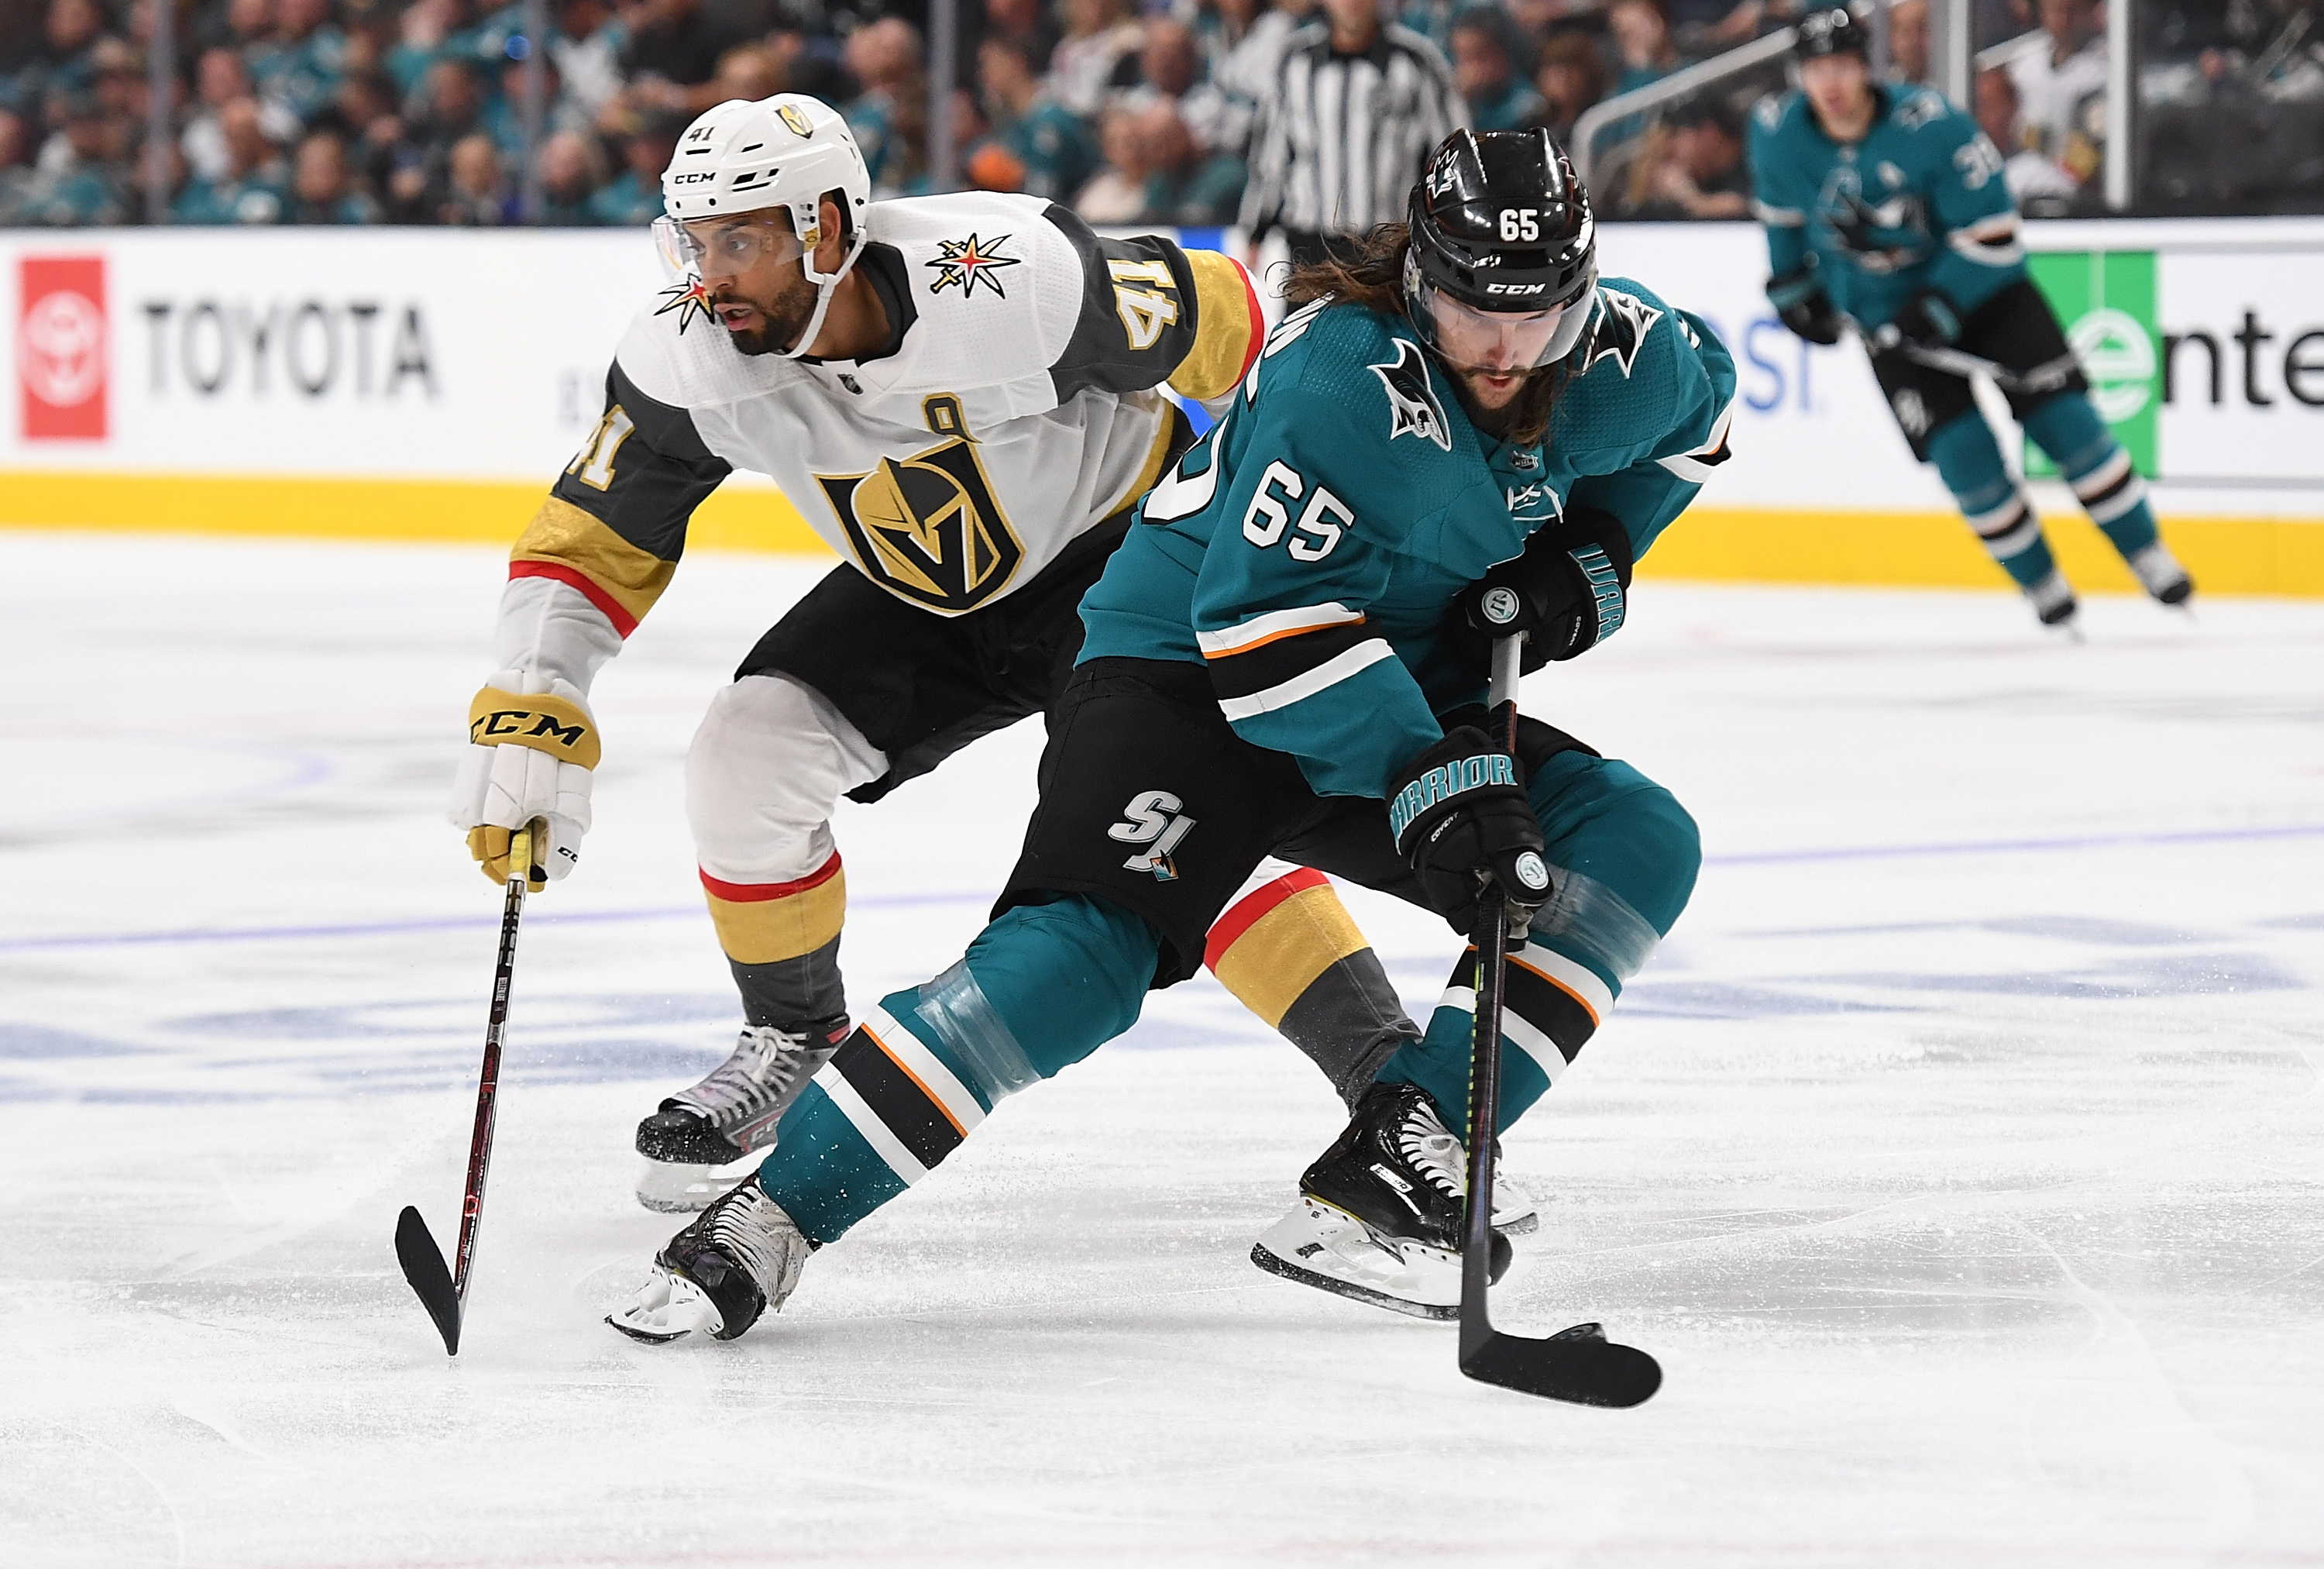 SAN JOSE, CA - APRIL 12: Erik Karlsson #65 of the San Jose Sharks skate with control of the puck keeping it away from Pierre-Edouard Bellemare #41 of the Vegas Golden Knights during the third period in Game Two of the Western Conference First Round during